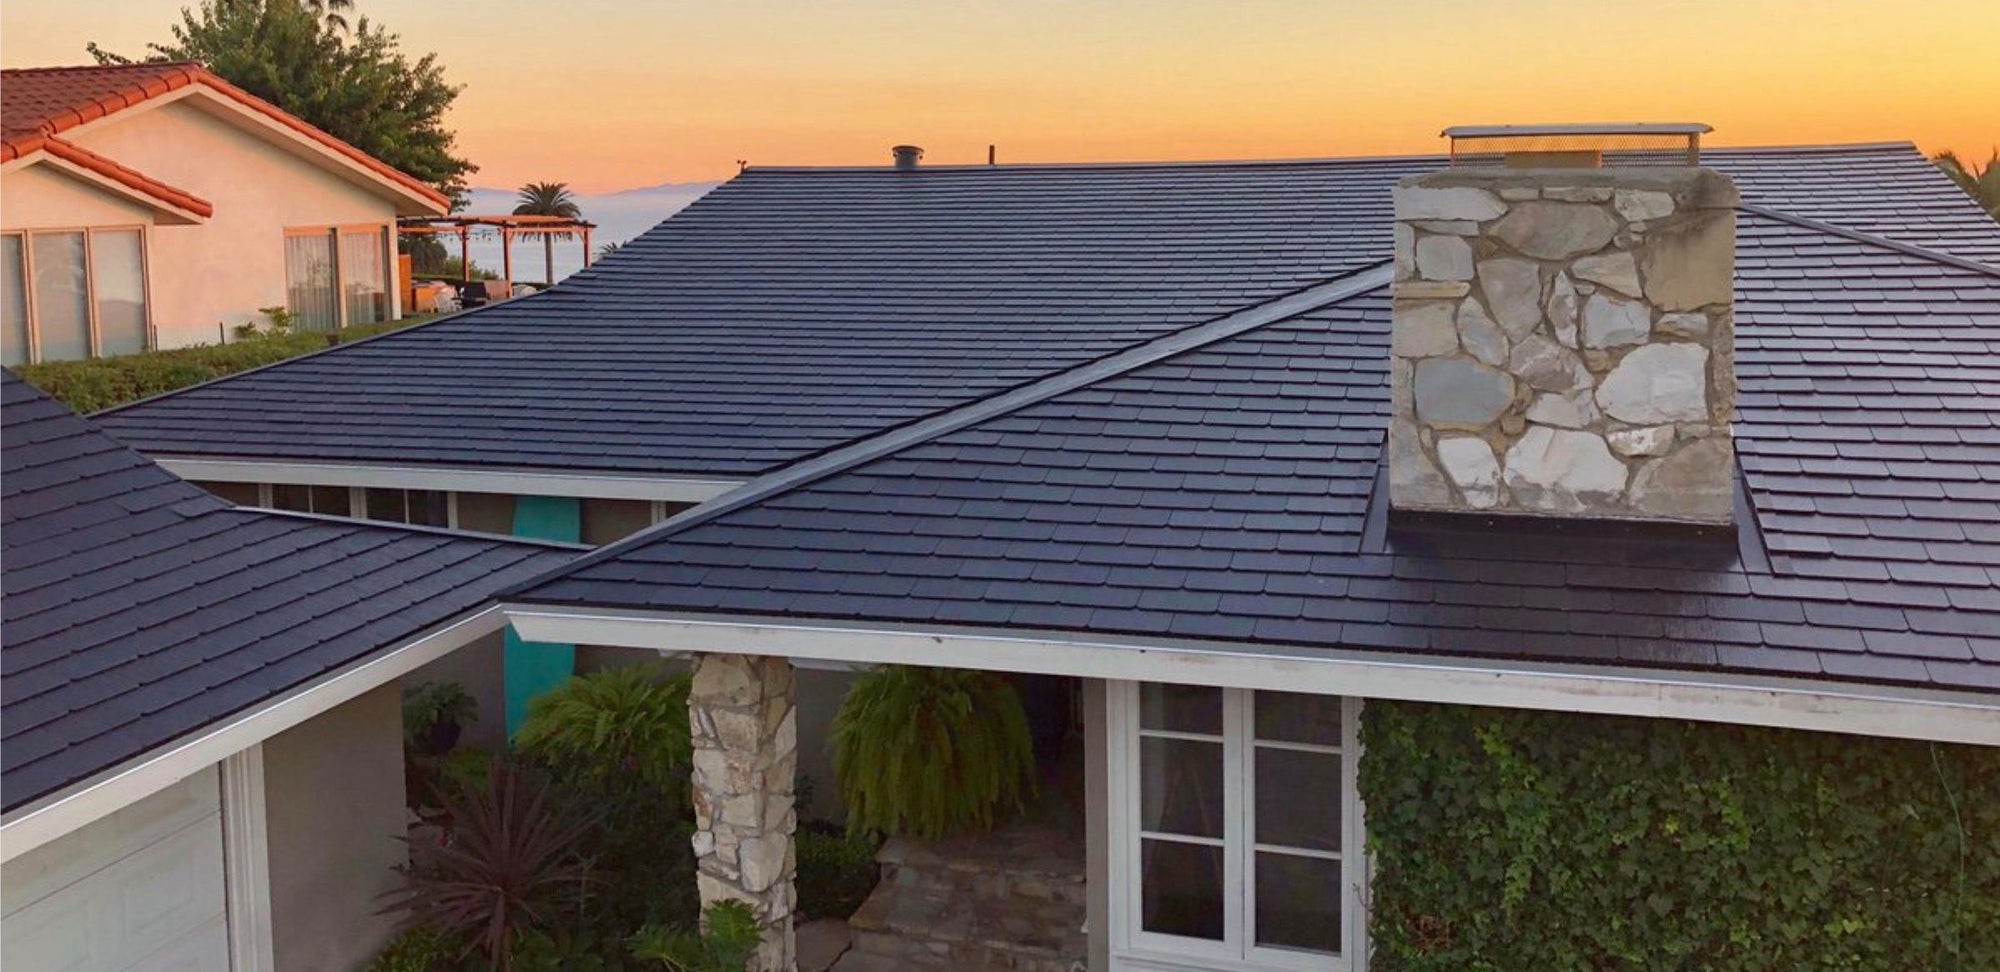 Tesla Latest Solar Roof Patent Which Will Benefit Consumers With Even More Affordable Prices